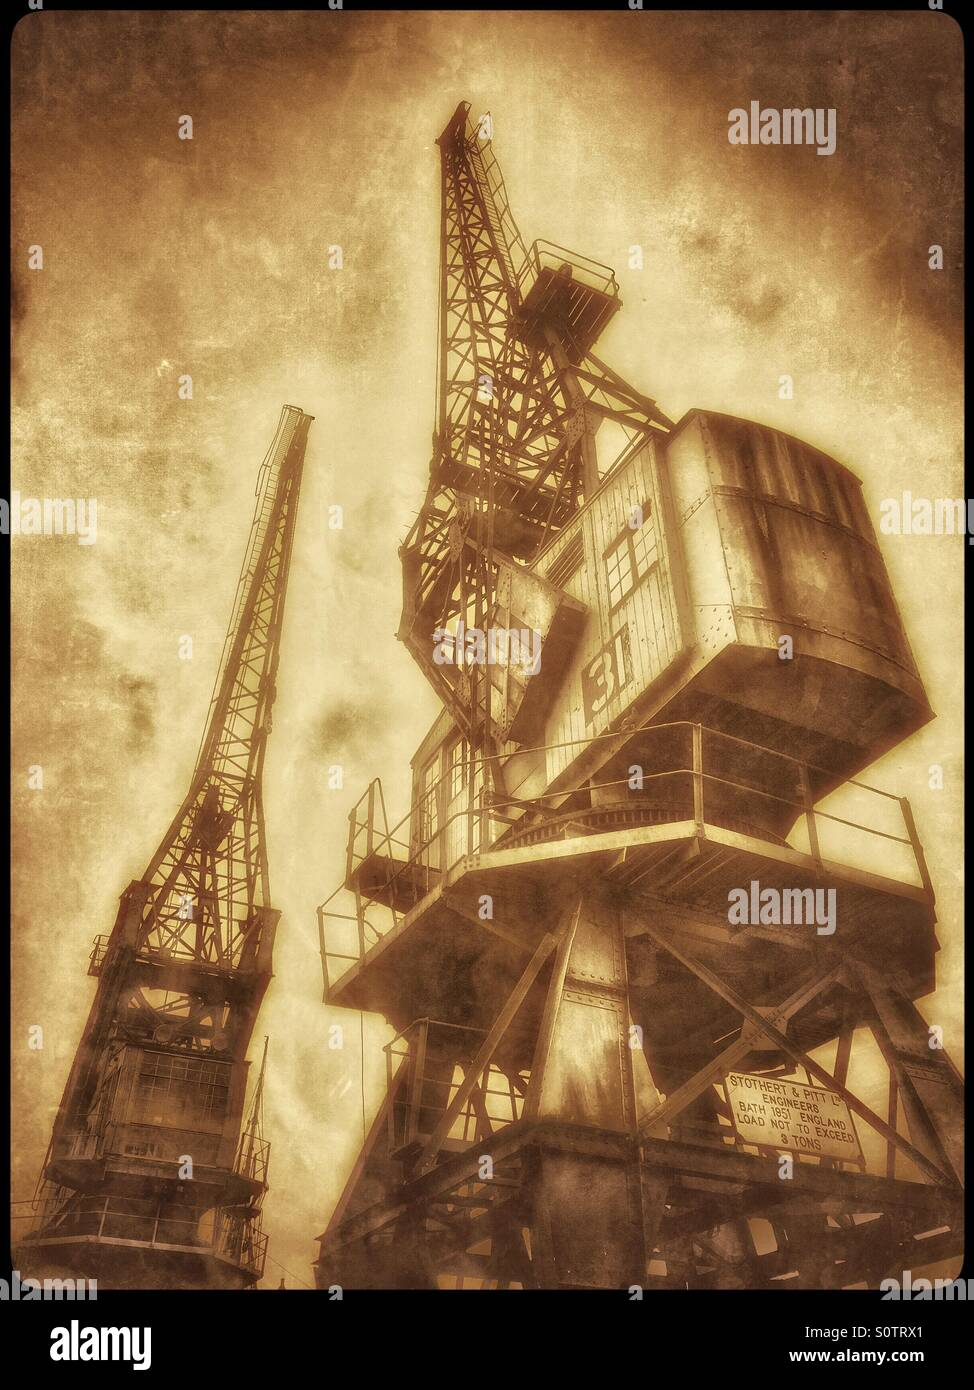 A Sepia Antique Effect Picture of Two Cranes that are situated on the edge of The Floating Harbour, close to the - Stock Image